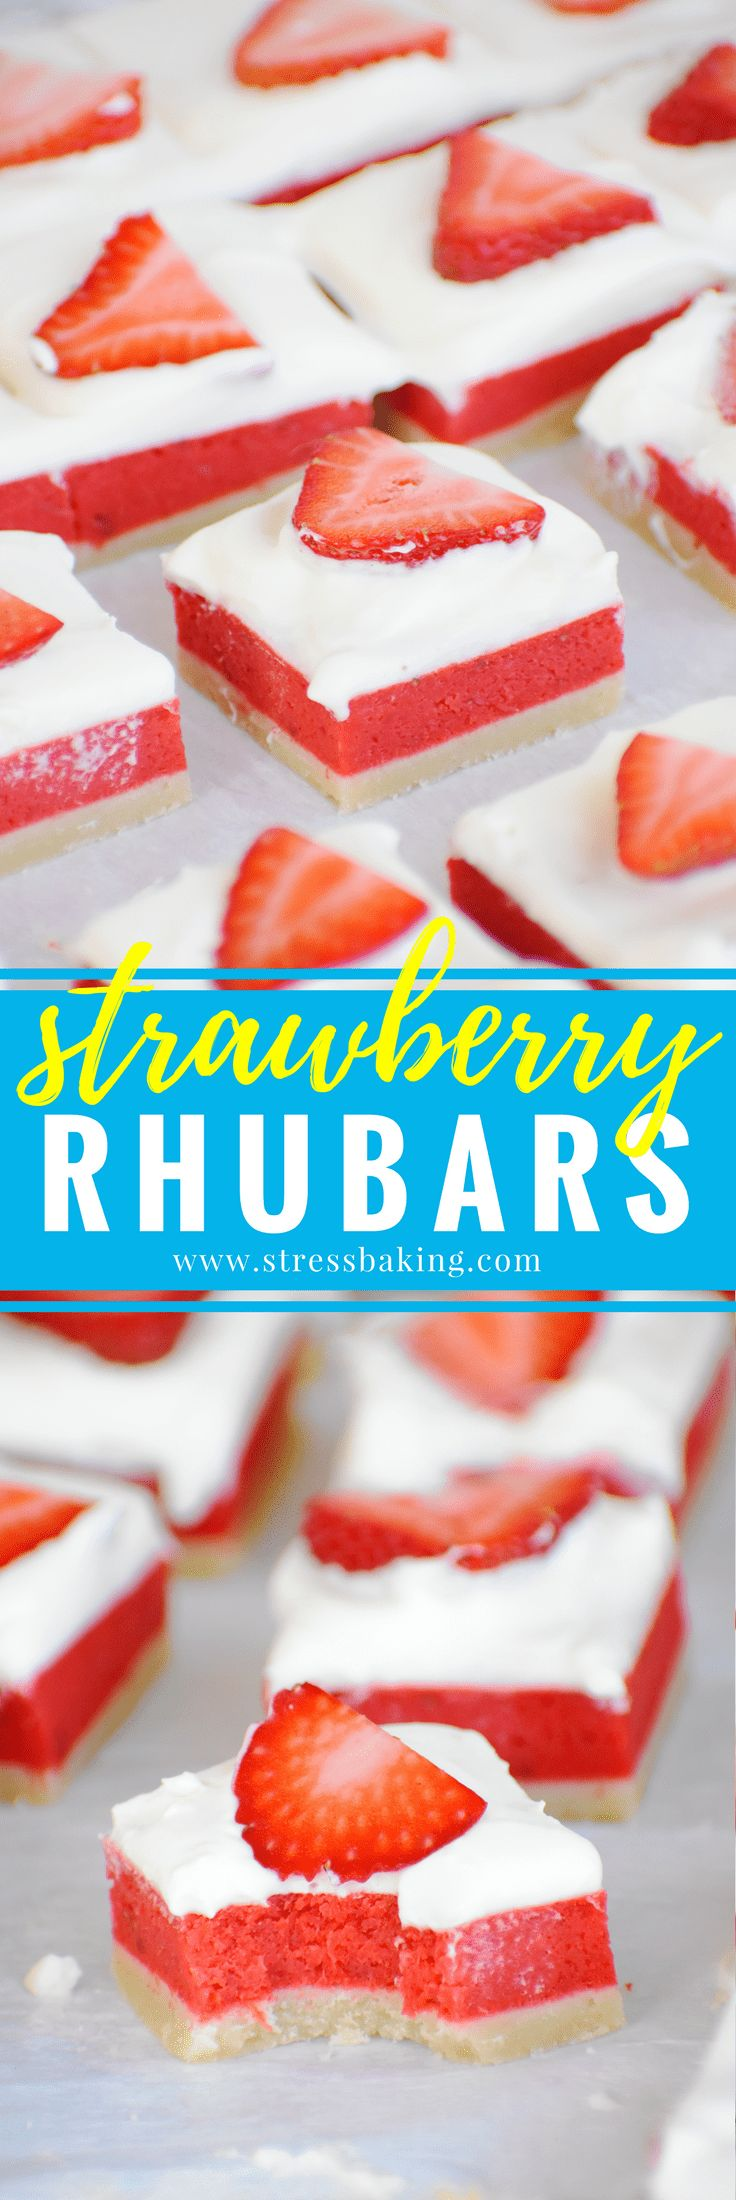 Strawberry Rhubars: These gorgeous three layer bars are a guaranteed crowd-pleaser! A lemon cream cheese base is topped with sweet strawberry and tart rhubarb, and it's all topped with fluffy whipped cream and fresh strawberry slices. | stressbaking.com #stressbaking @stressbaking #nationalstrawberryday #strawberries #strawberryseason